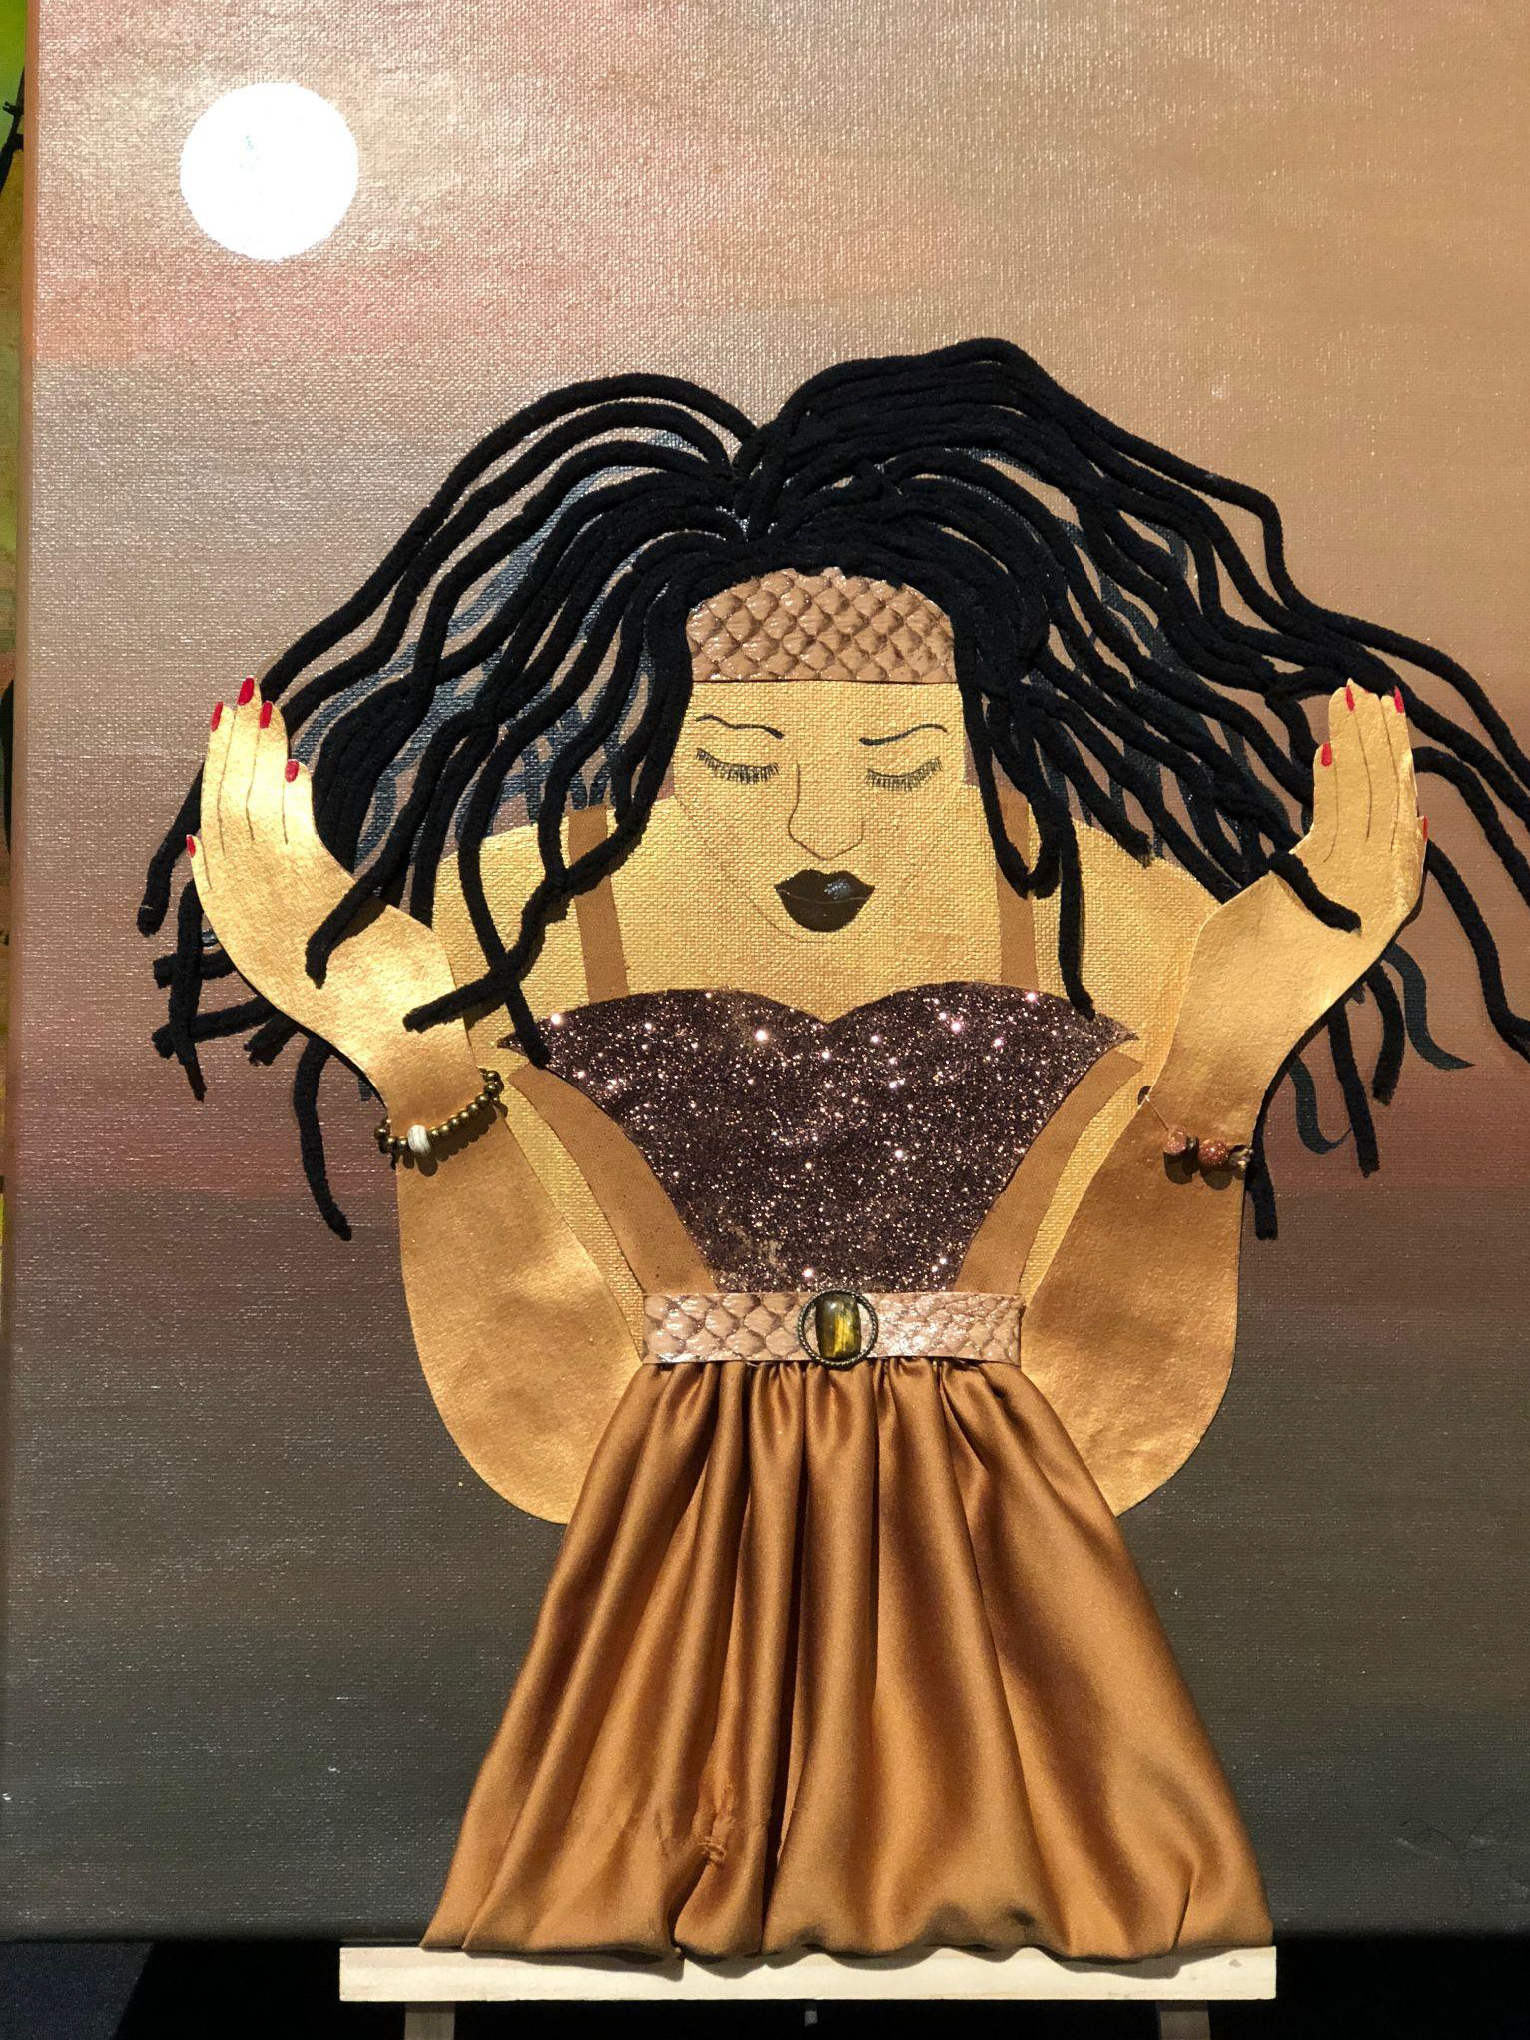 A woman with long locs kneels in prayer with her eyes closed and hands faced upwards. She is wearing a glitter top and a gold satin skirt.